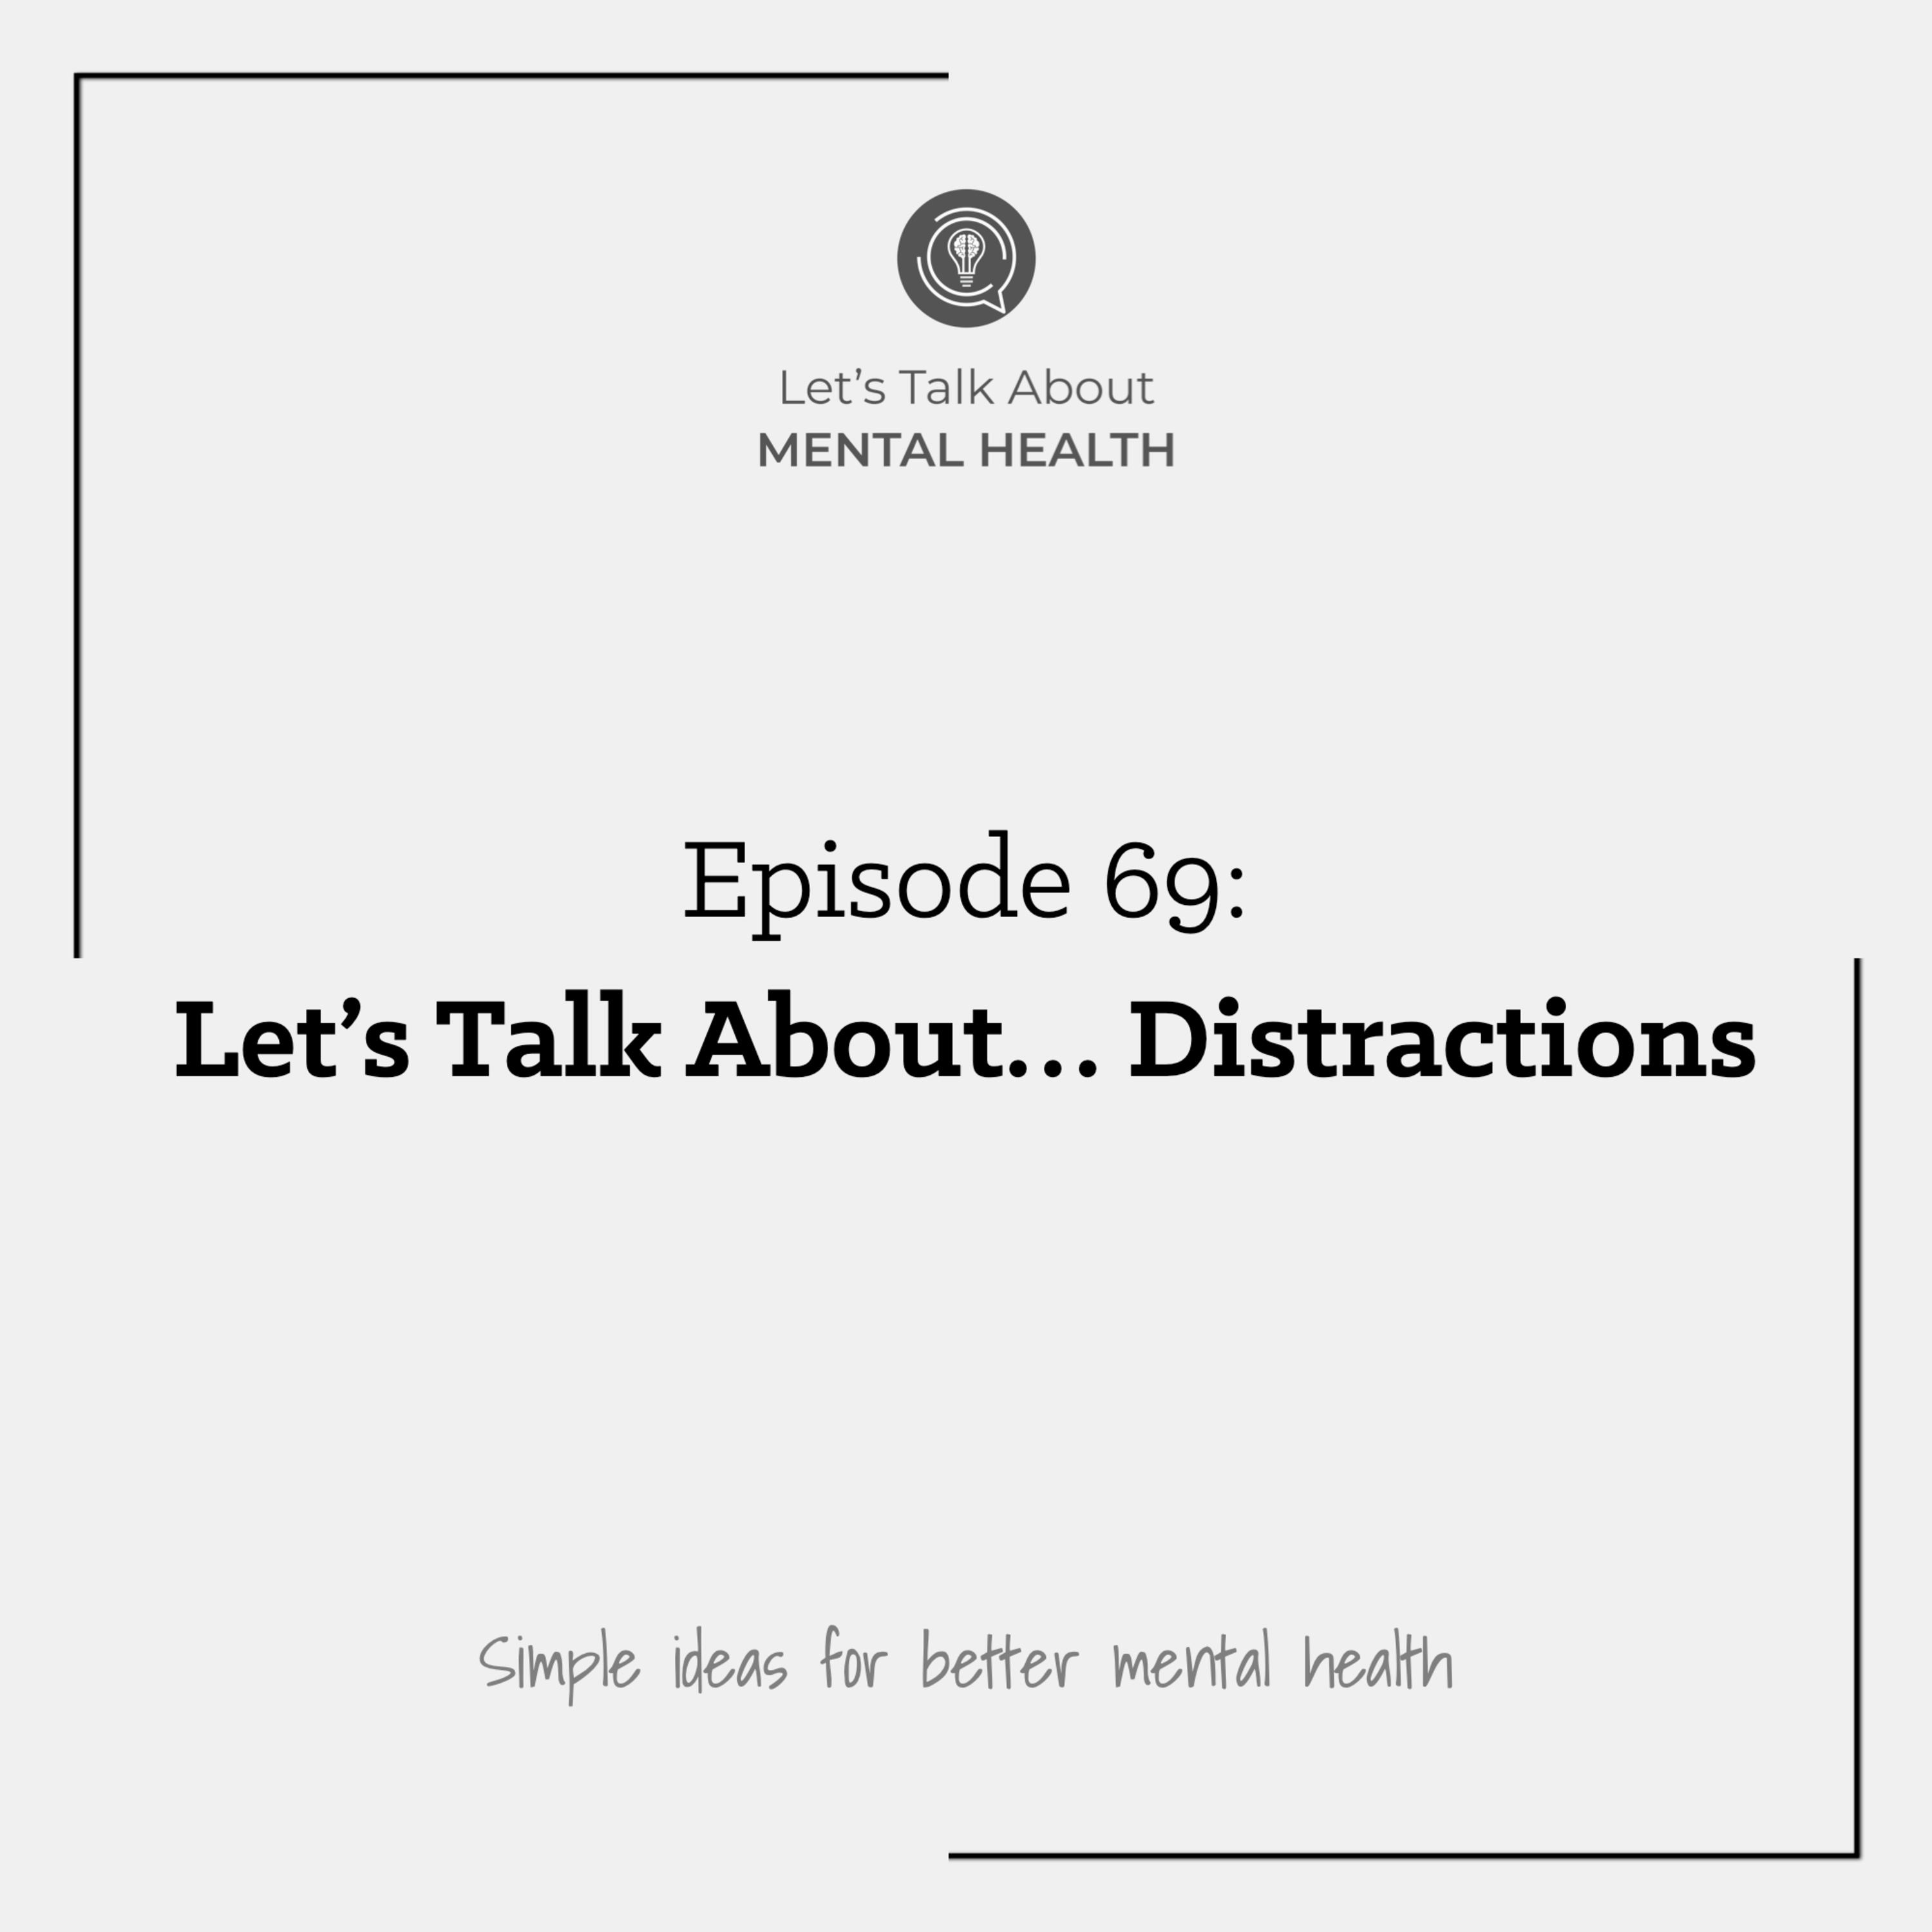 Let's Talk About Mental Health - Let's Talk About... Distractions